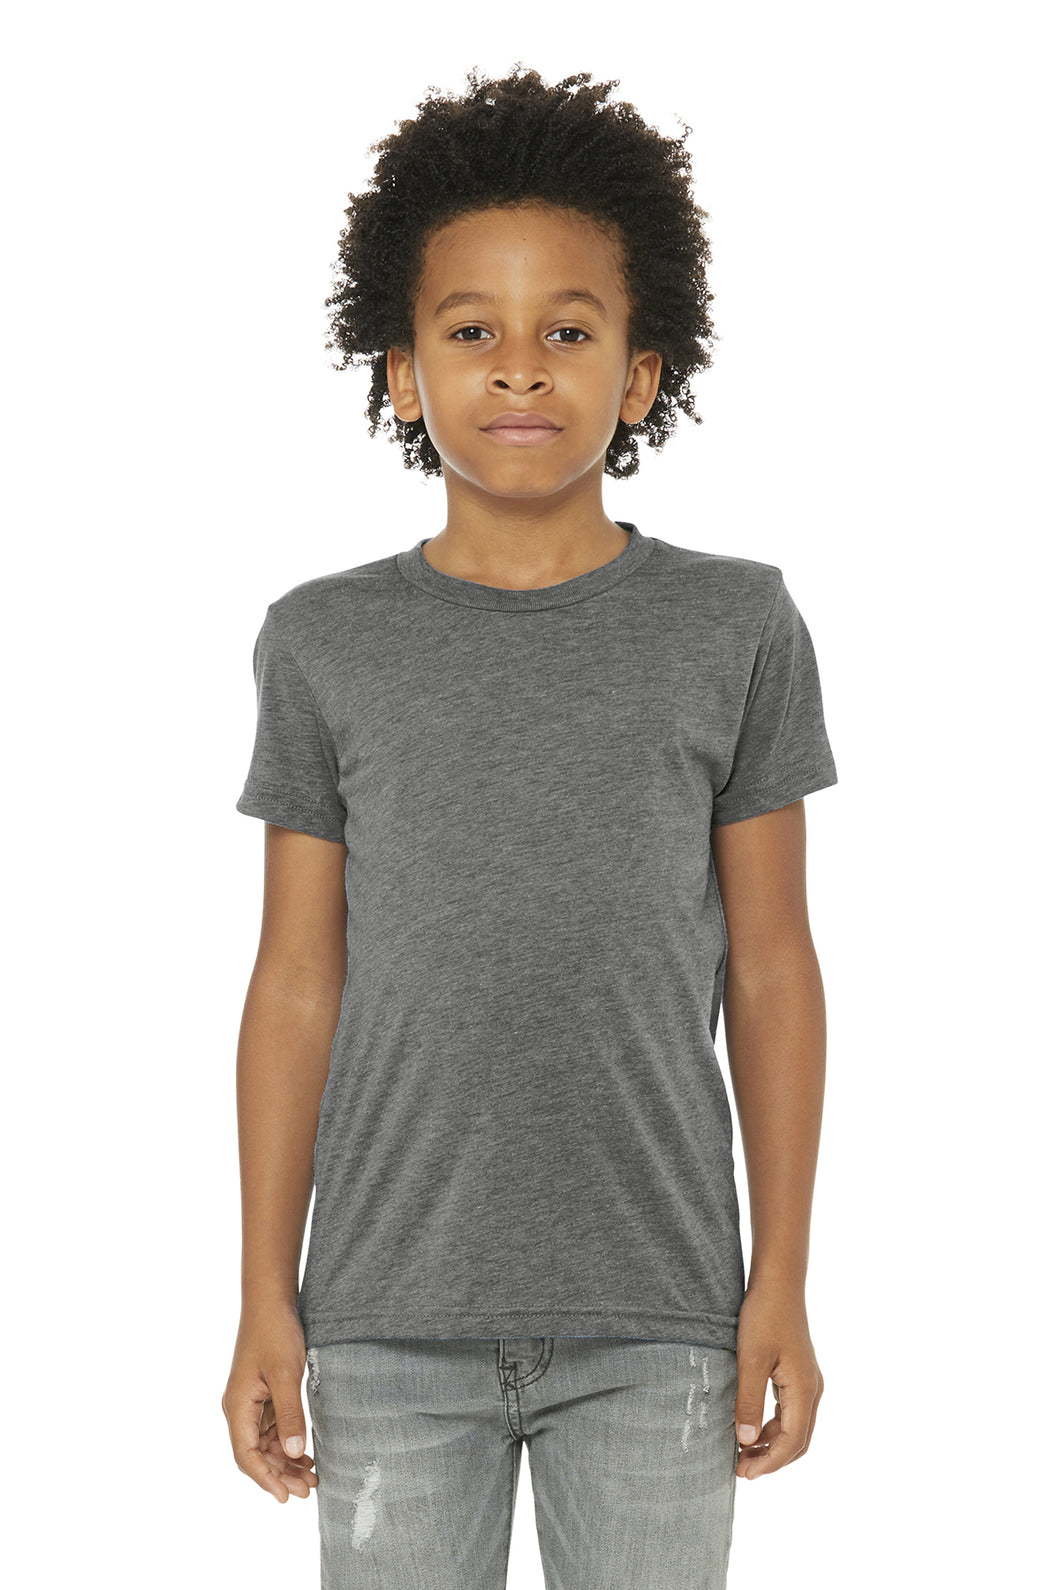 LL Sailboat Youth Triblend Short Sleeve Tee